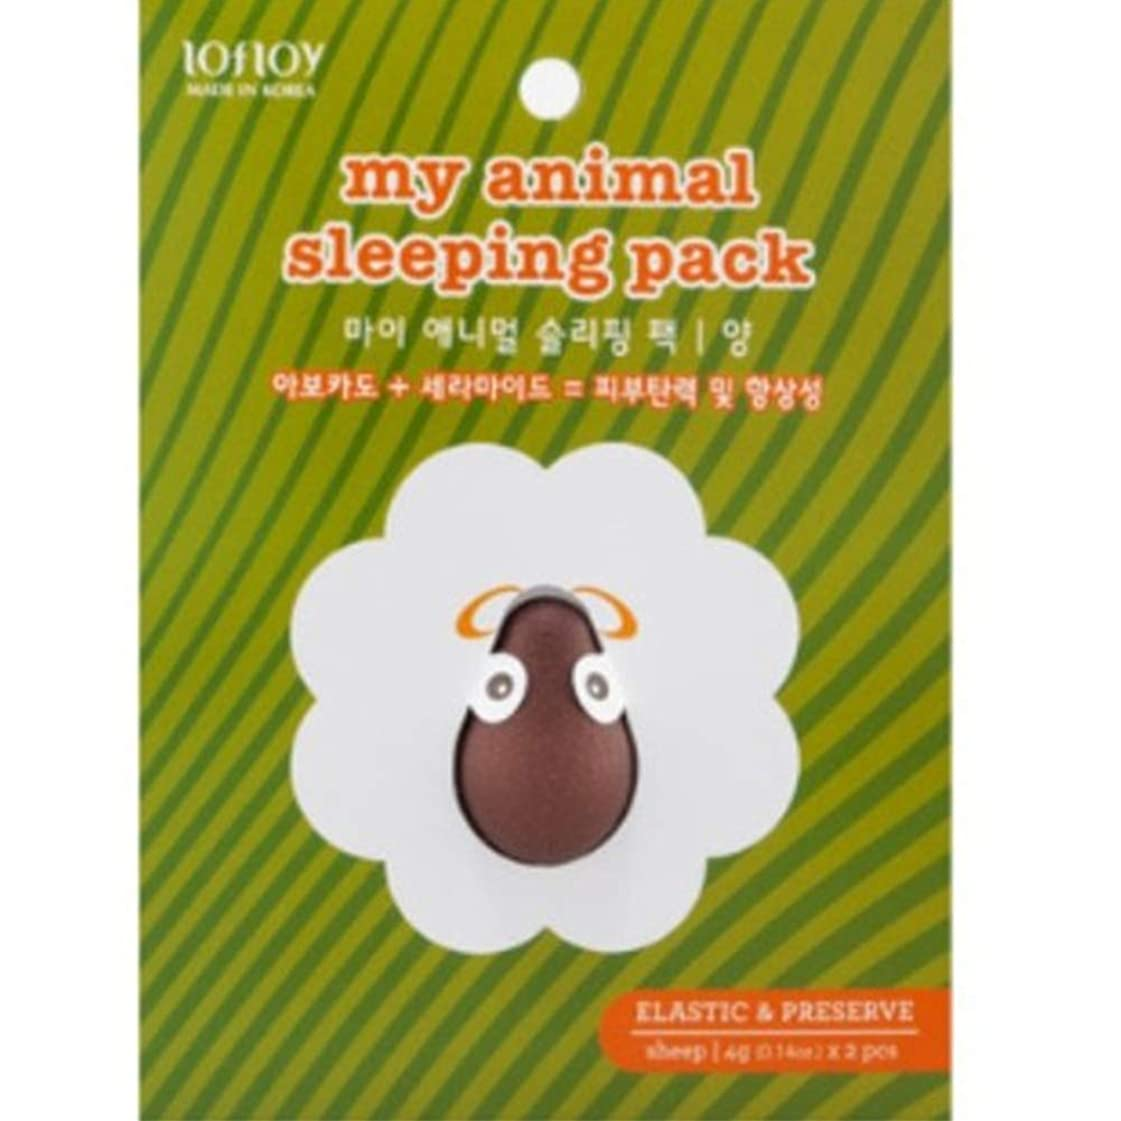 誓約中央にはまってLOFLOY My Animal Sleeping Pack Sheep CH1379393 4g x 2PCS [並行輸入品]